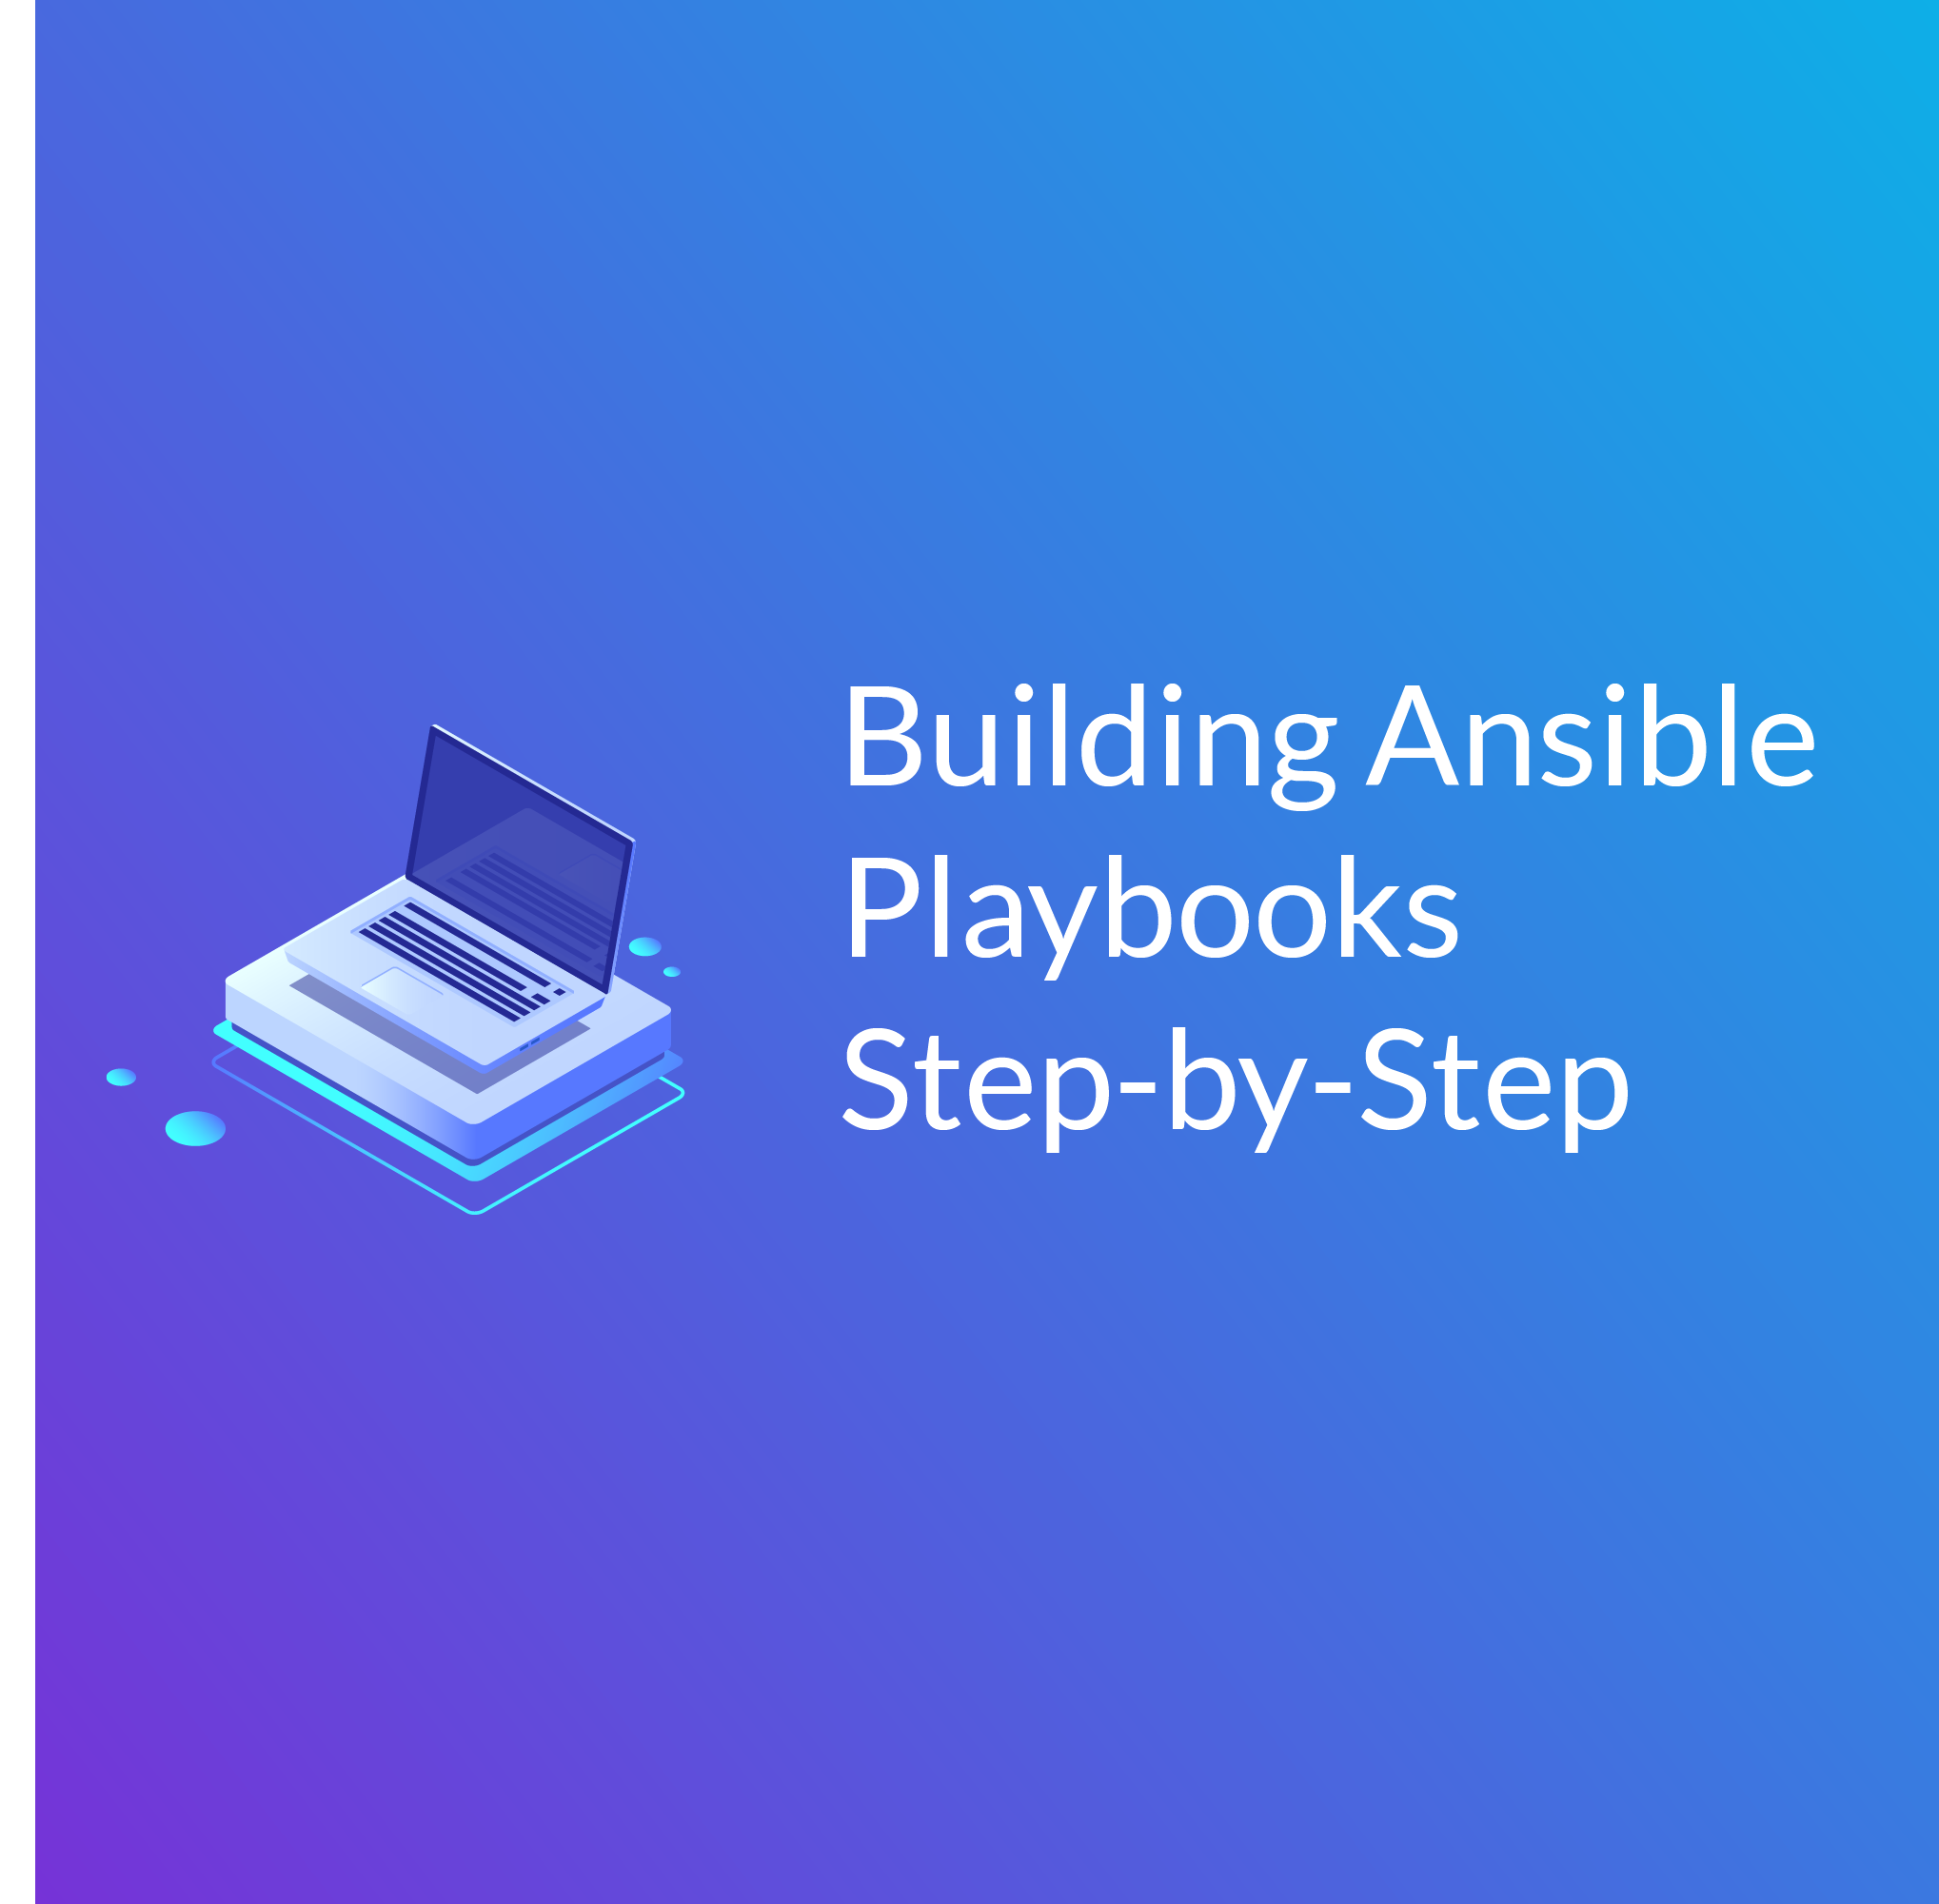 Building Ansible playbooks, step-by-step